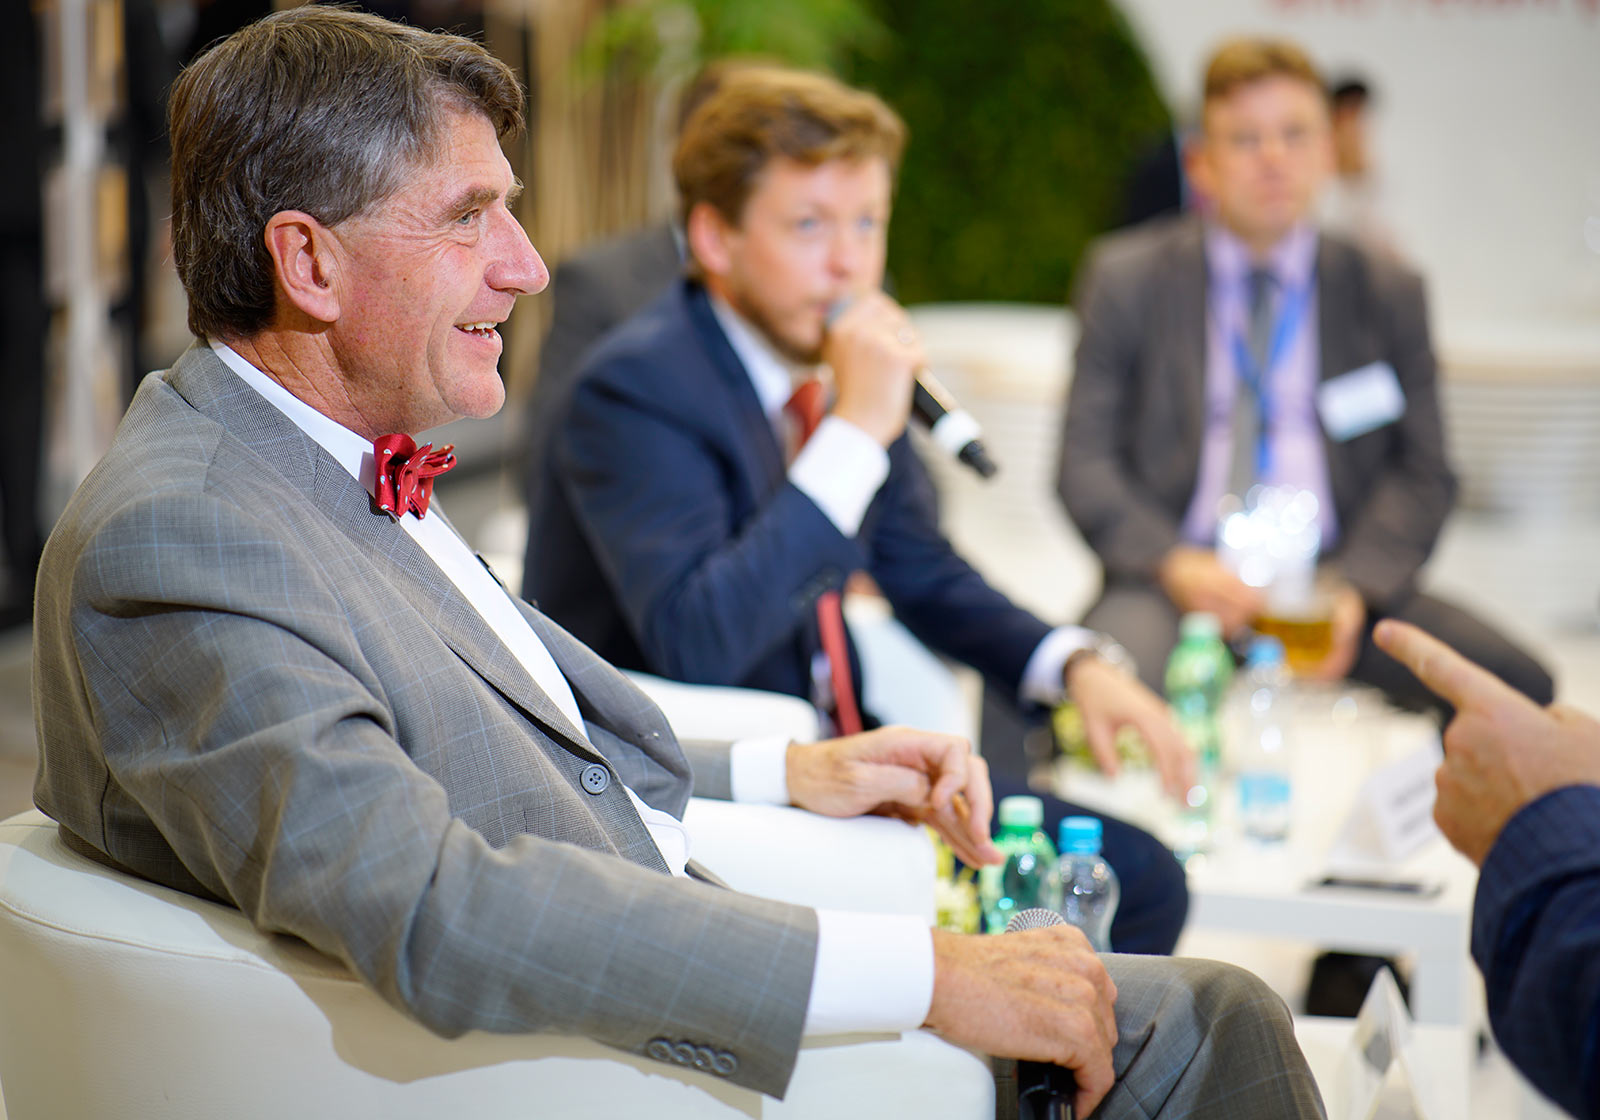 Christoph M. Achammer, CEO of ATP, during the round table discussion. Photo: Ulmart